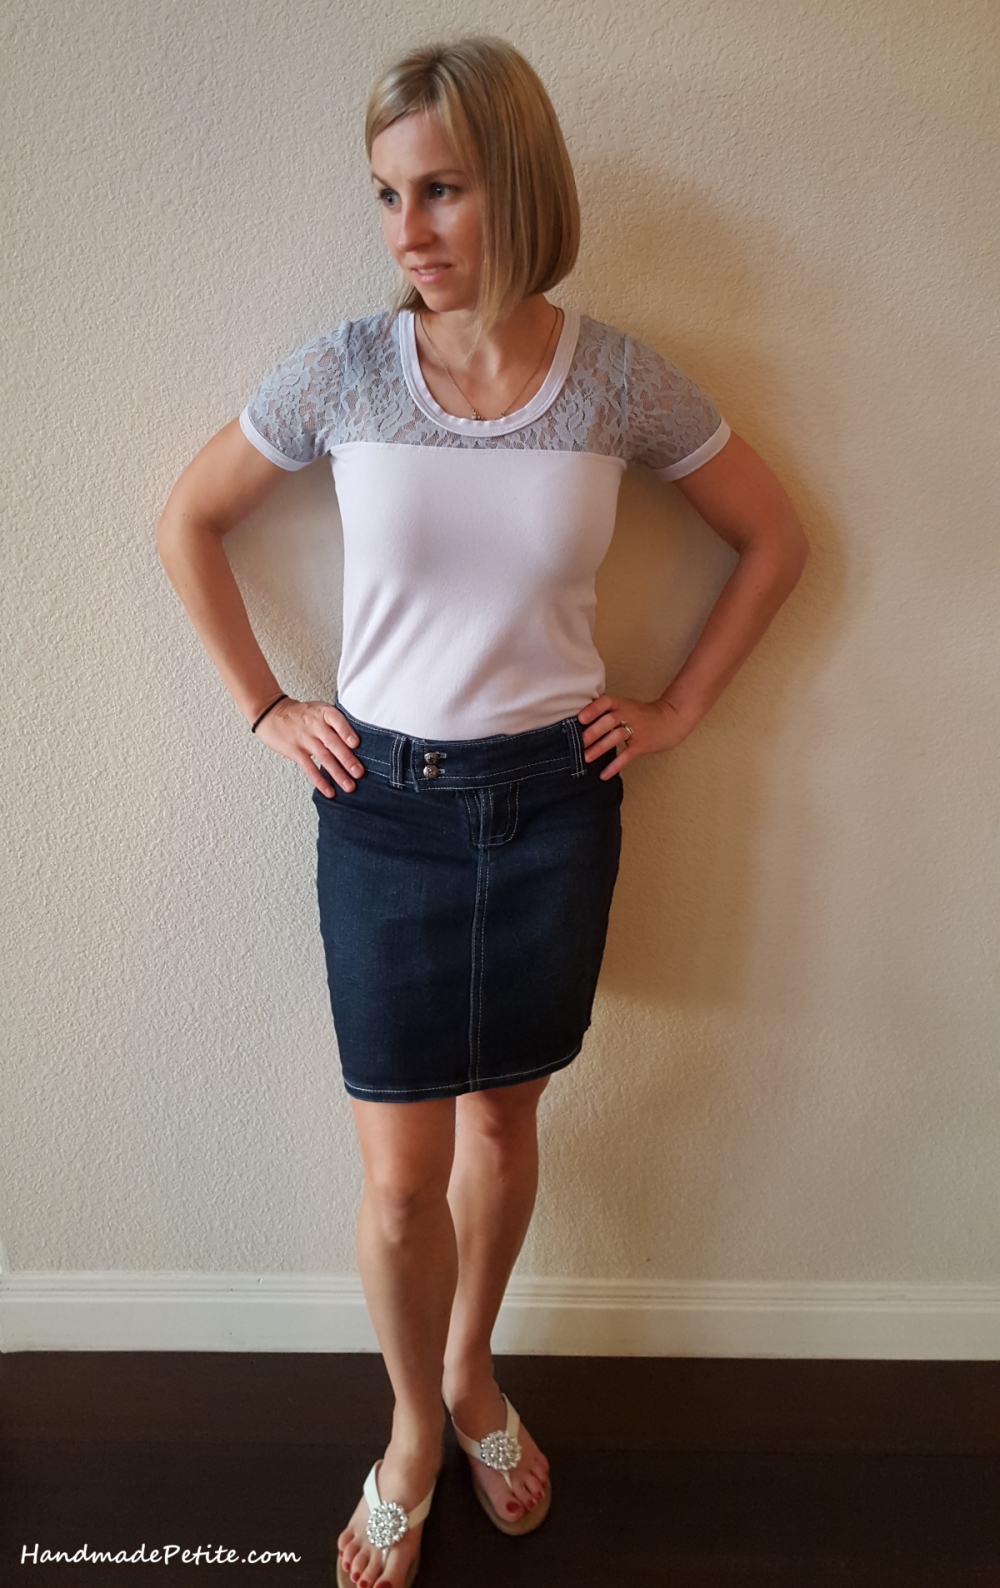 Handmade denim skirt cloned from ready to wear